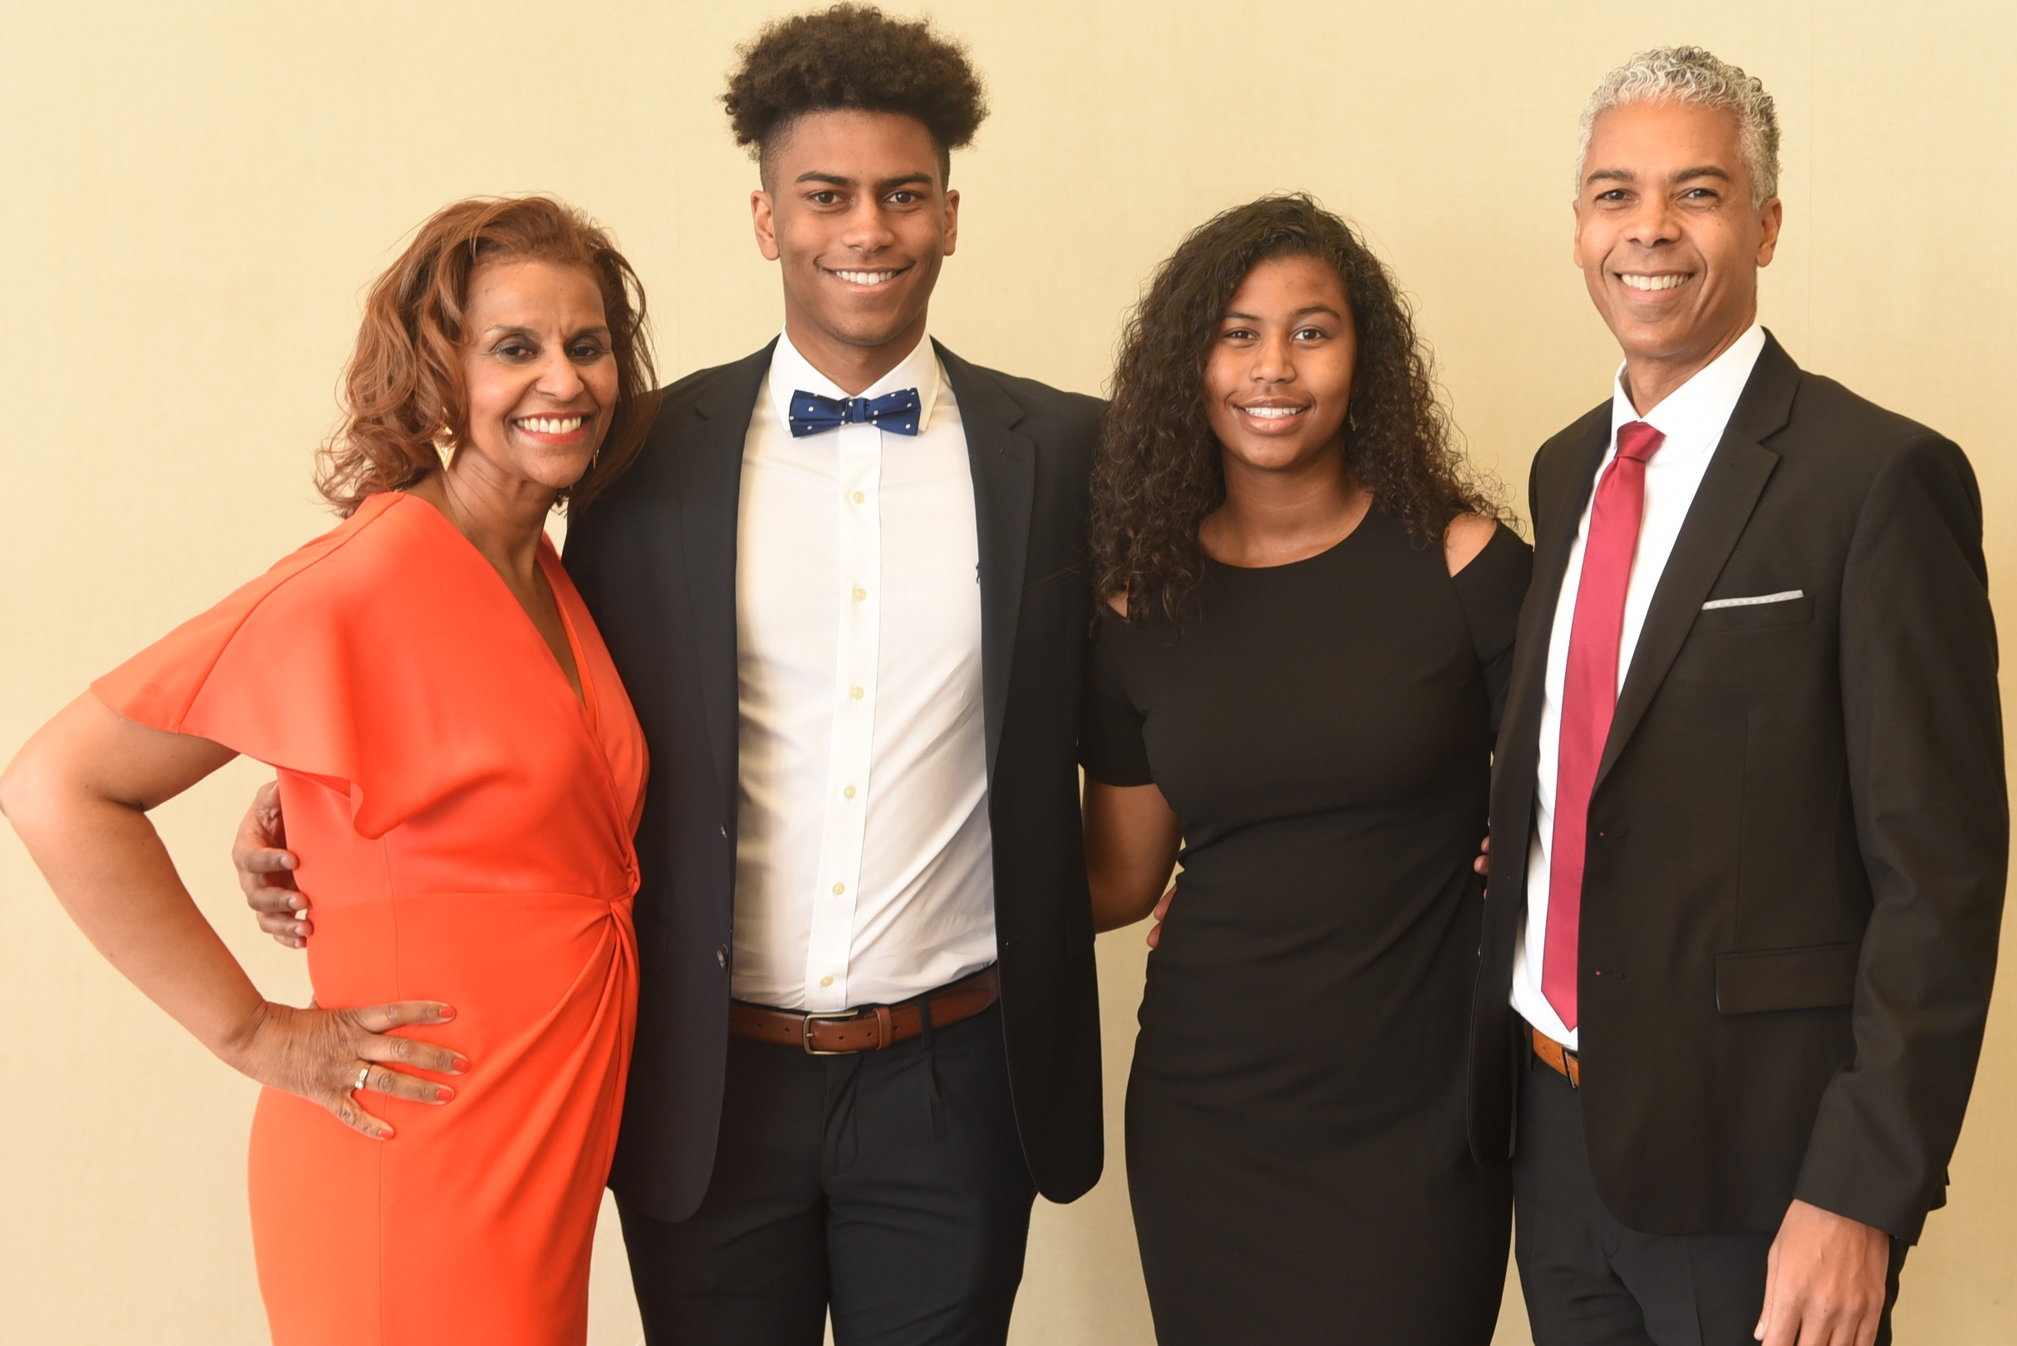 Two-time Harry Jerome Award winner Dr. Dominick Shelton with his wife Jacqueline Spence and their children Sydney & Taylor